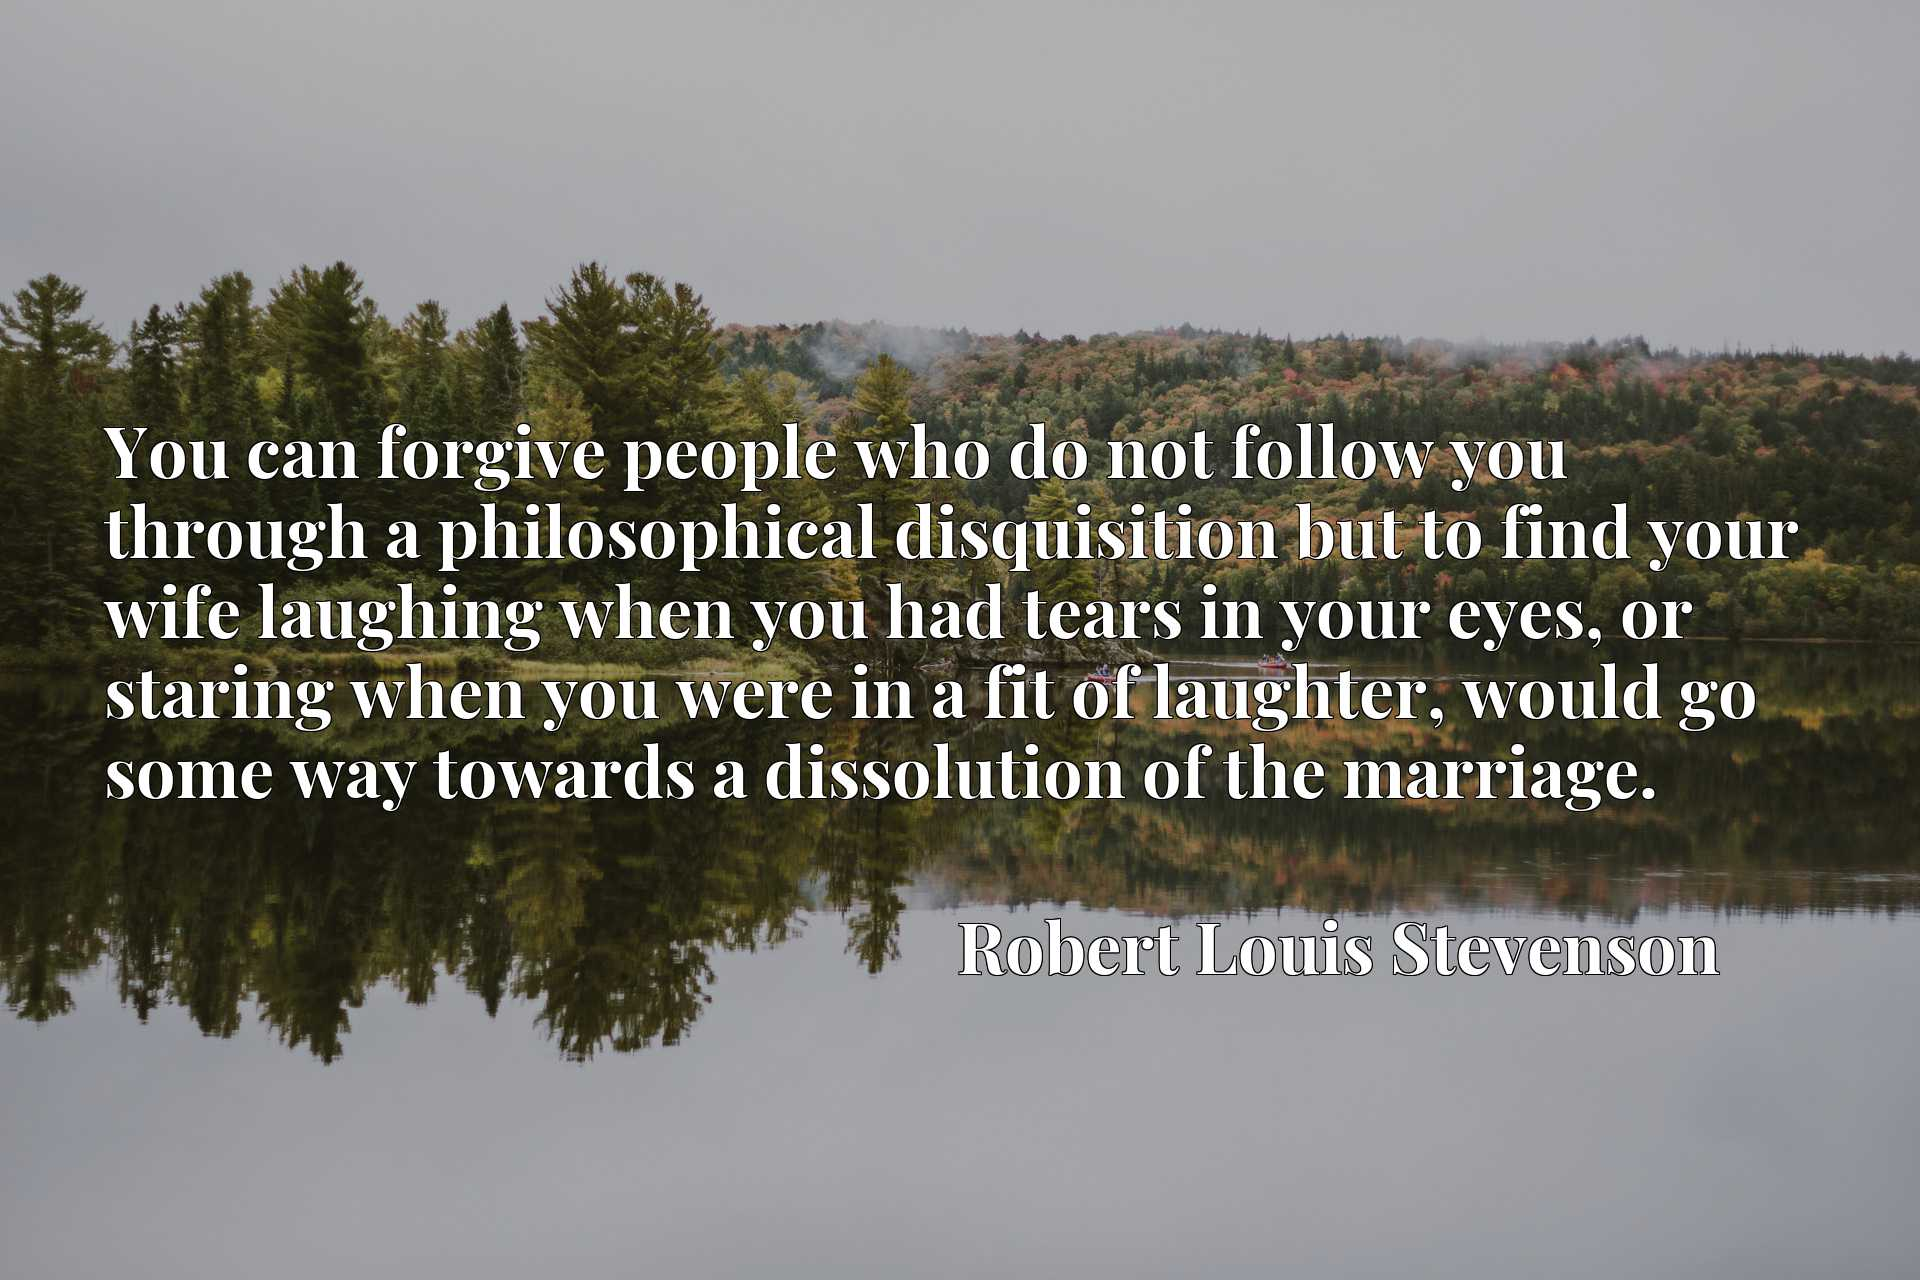 Quote Picture :You can forgive people who do not follow you through a philosophical disquisition but to find your wife laughing when you had tears in your eyes, or staring when you were in a fit of laughter, would go some way towards a dissolution of the marriage.